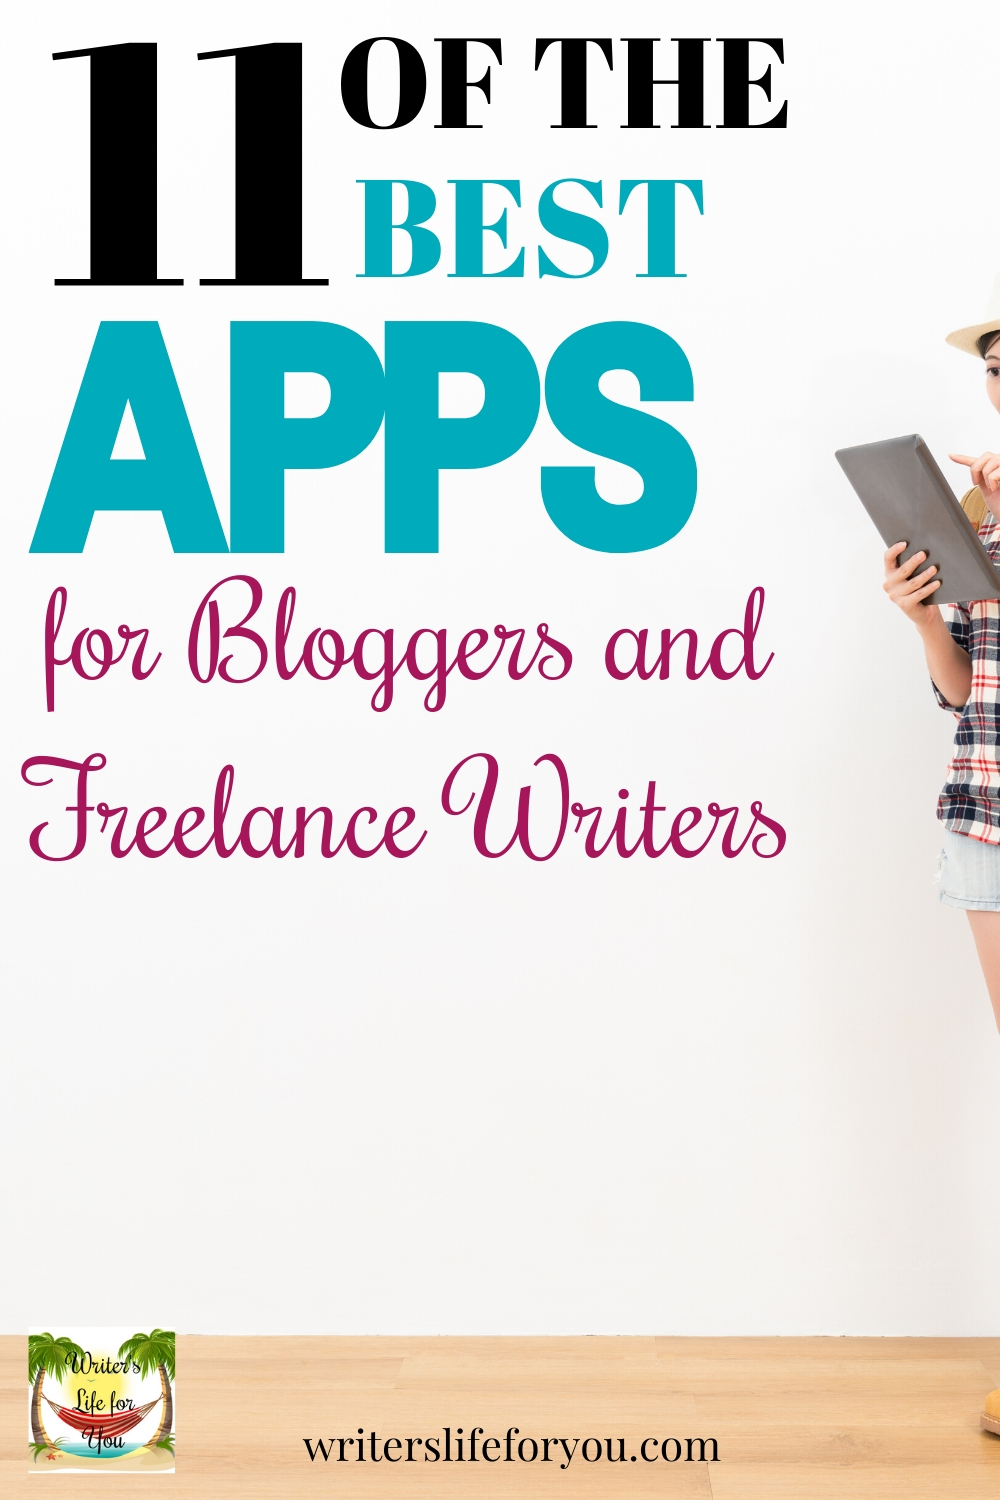 11 of the Best Apps for Bloggers and Freelance Writers that Make Life Easier (Especially When the Kids are Out of School Unexpectedly)